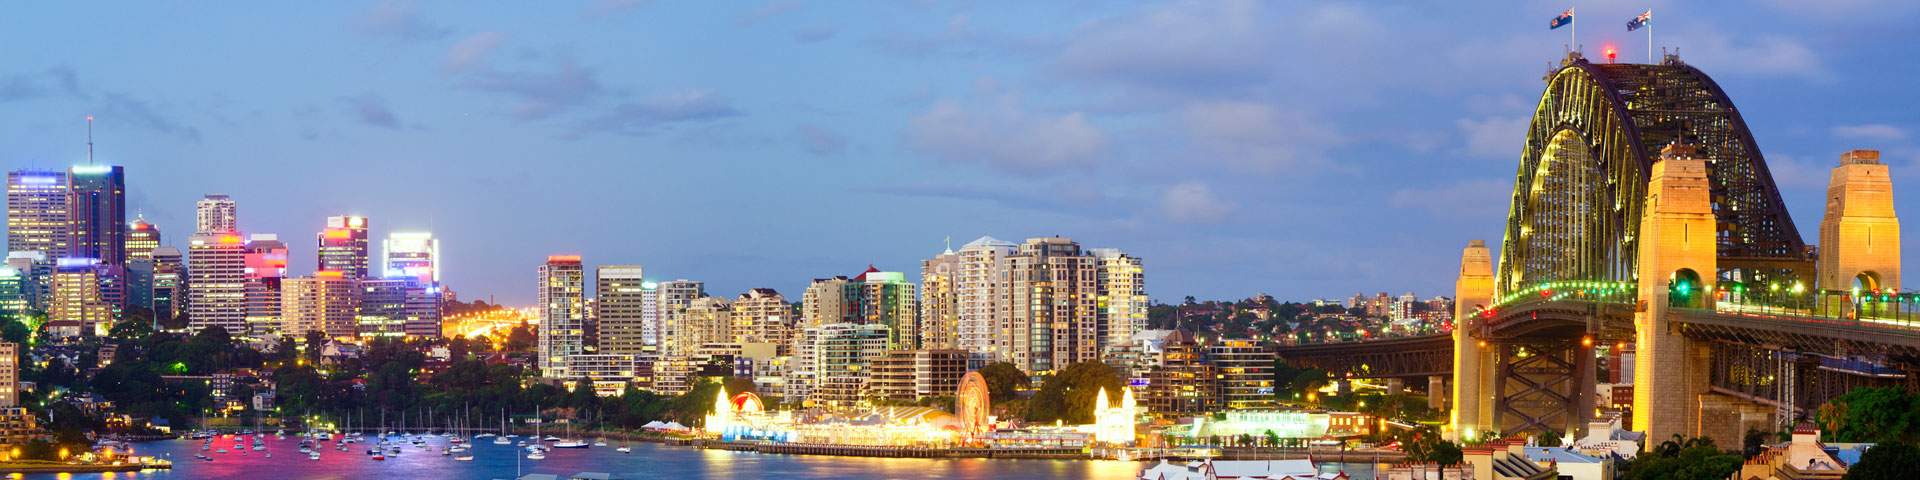 North Sydney panorama early evening